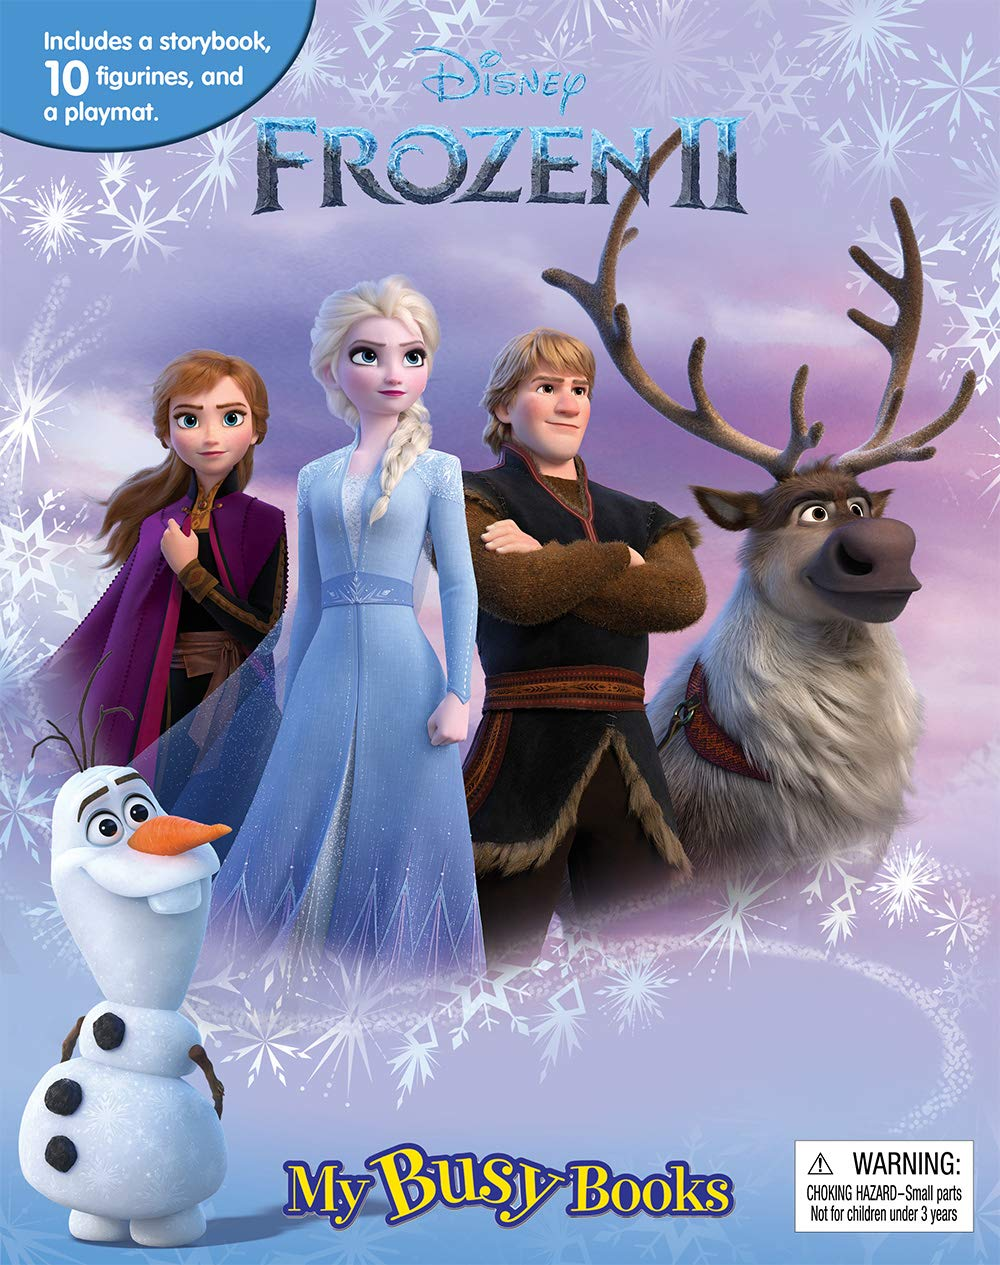 Frozen 2: My Busy Books